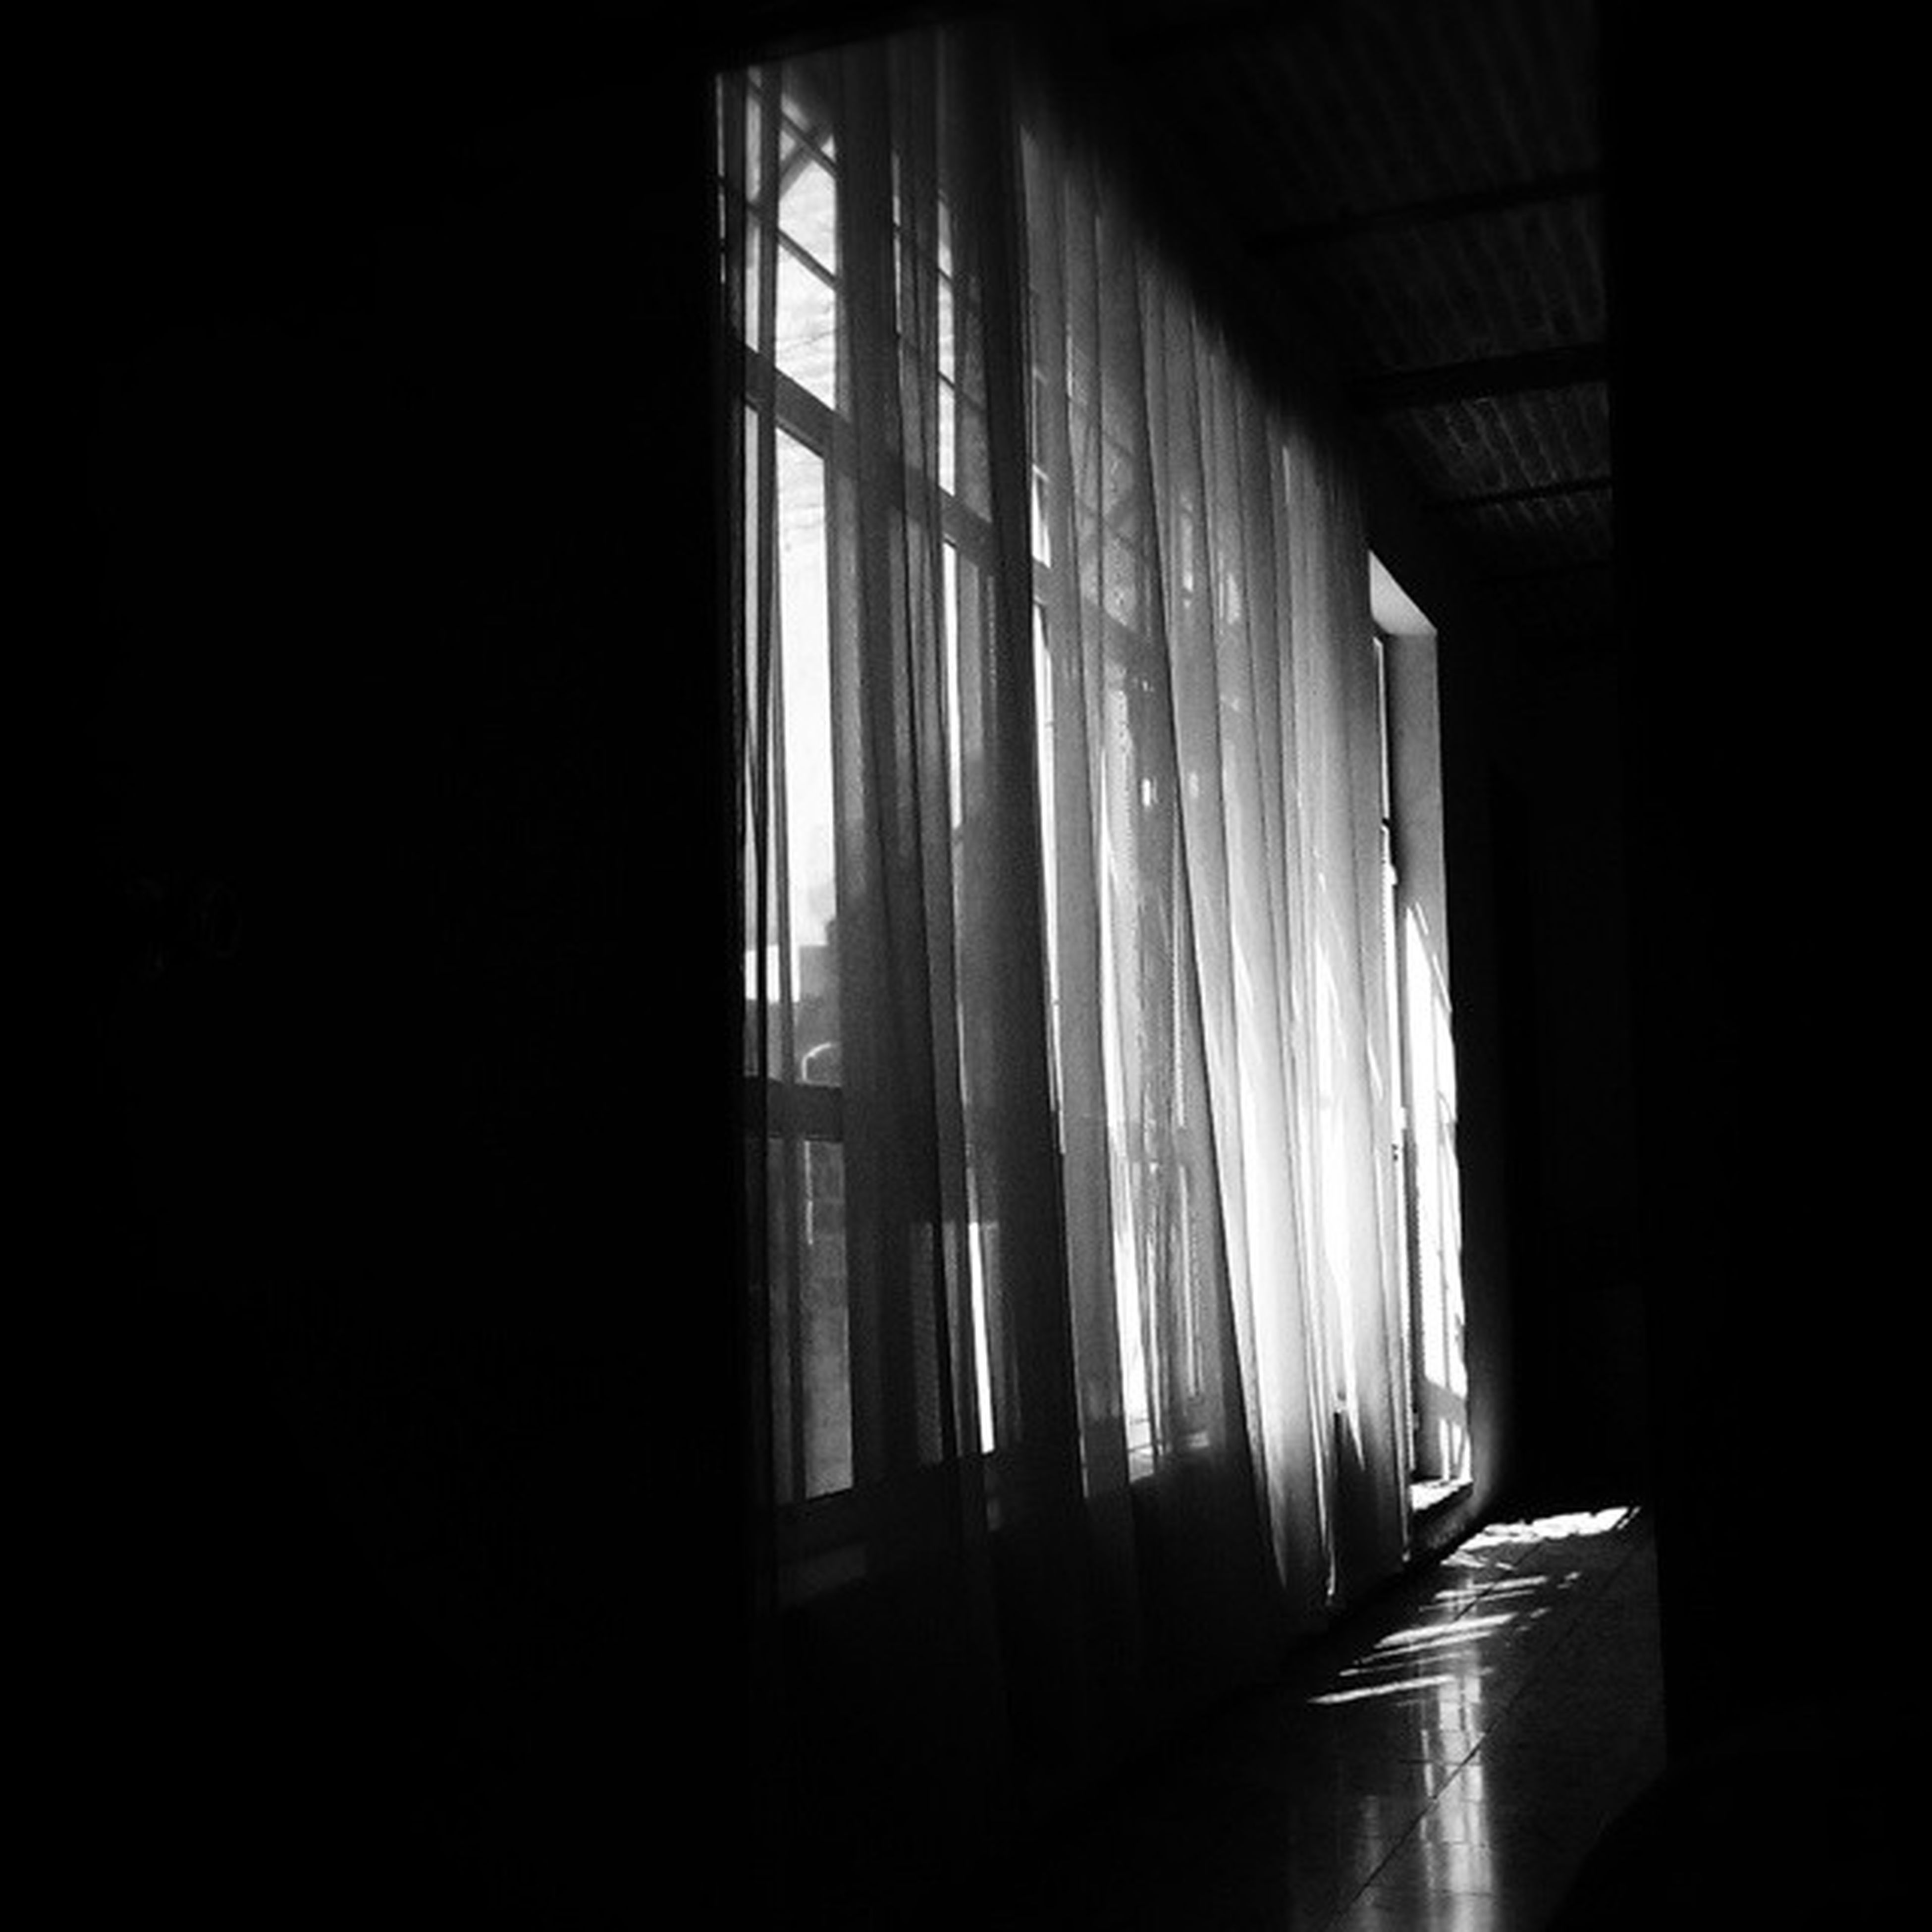 indoors, window, home interior, built structure, curtain, architecture, dark, sunlight, empty, absence, corridor, wall - building feature, house, wall, no people, shadow, flooring, glass - material, interior, door